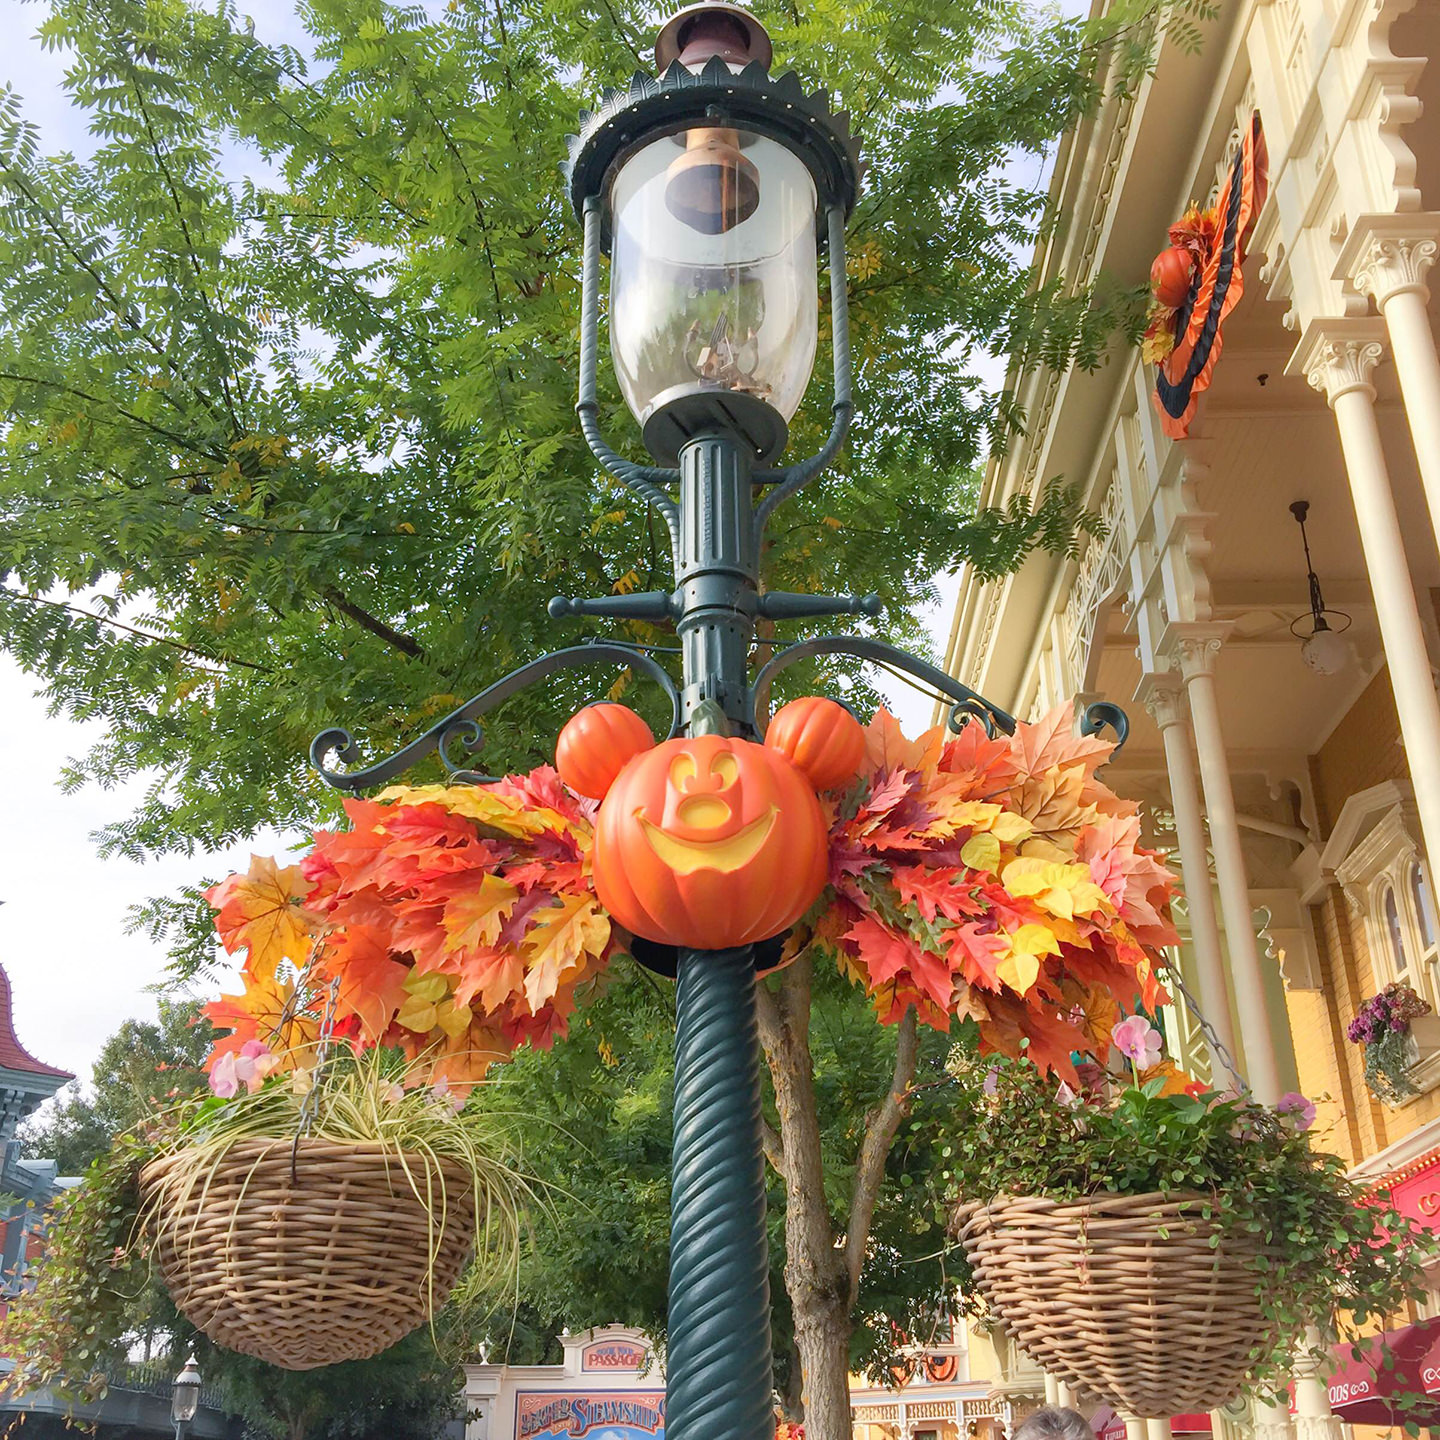 Blog-Mode-And-The-City-Lifestyle-Cinq-Petites-Choses-152-Disney-Halloween.JPG